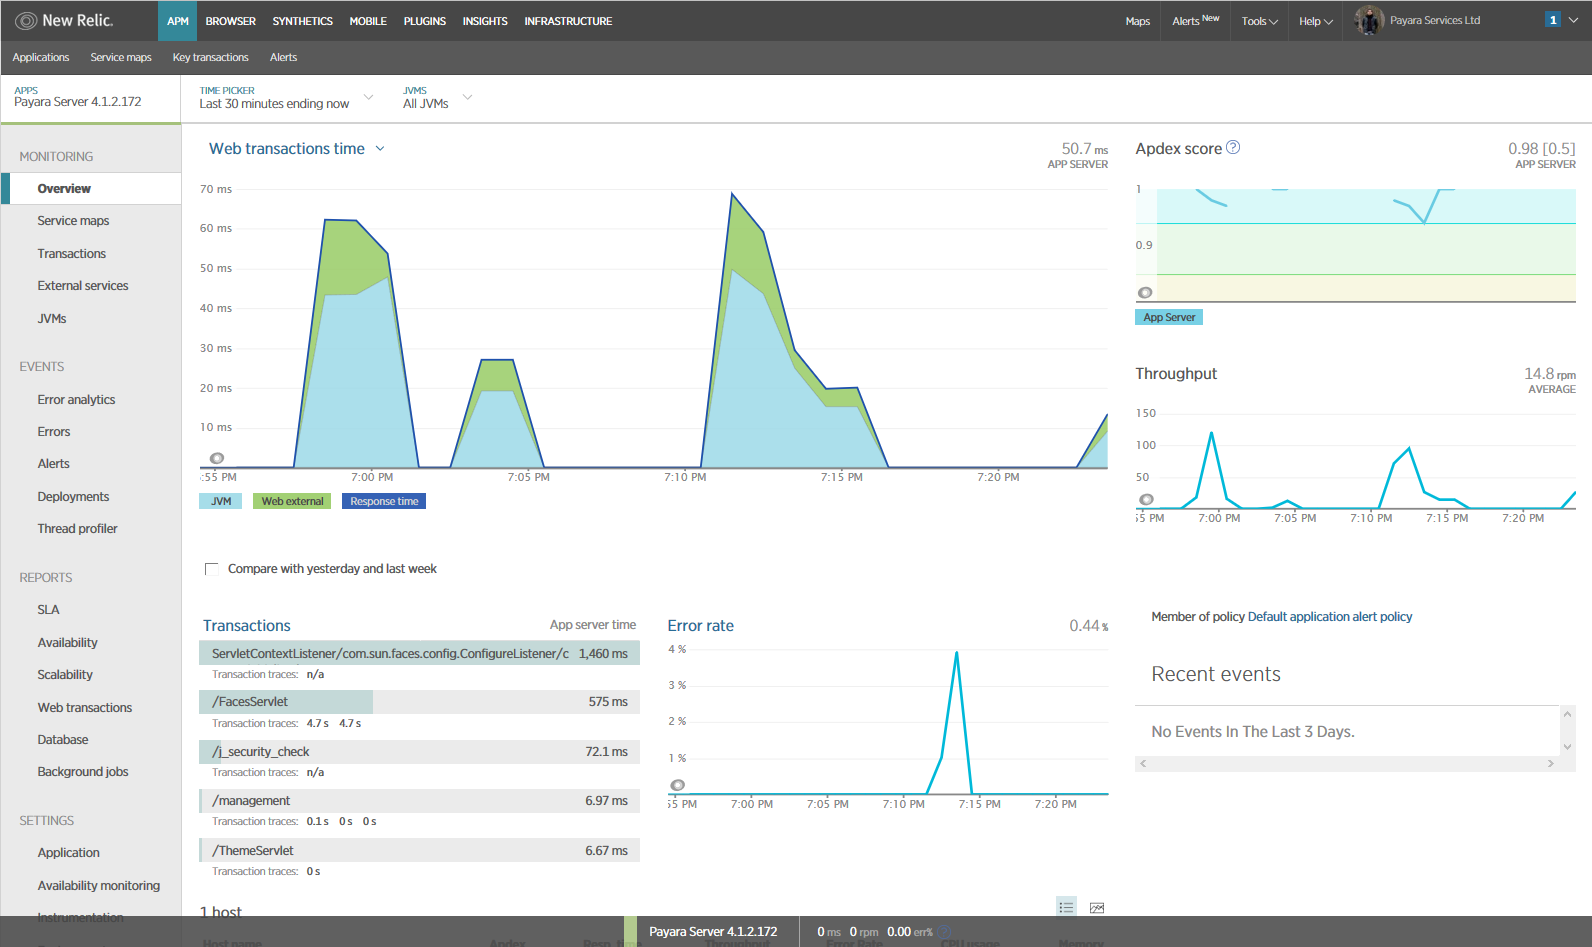 New Relic Application Details